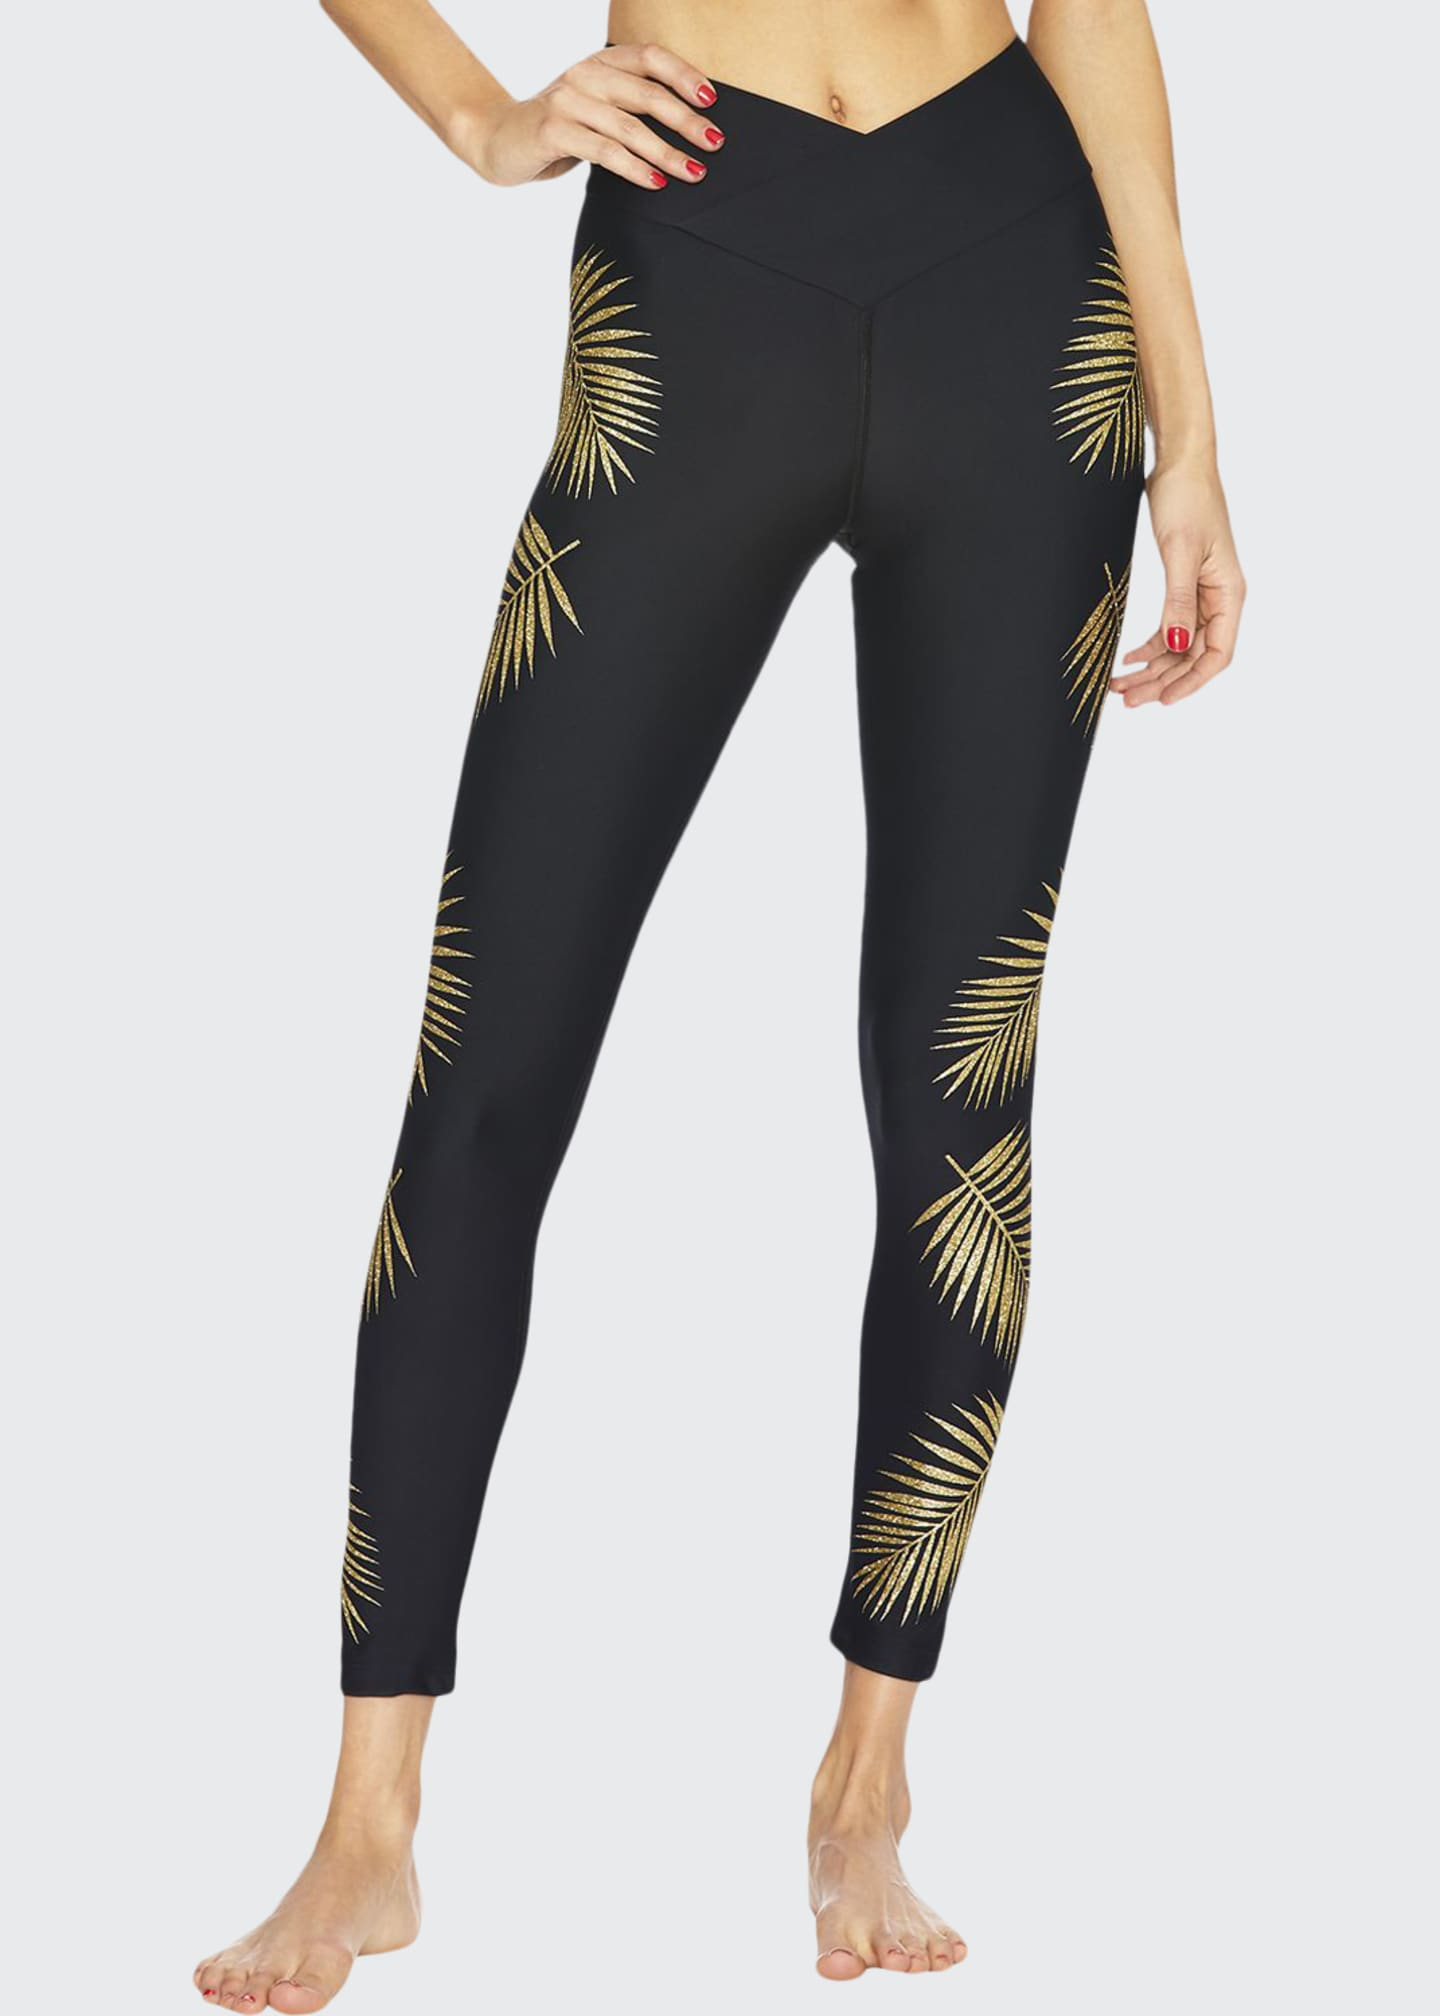 Beach Riot Palm V-Waist Leggings